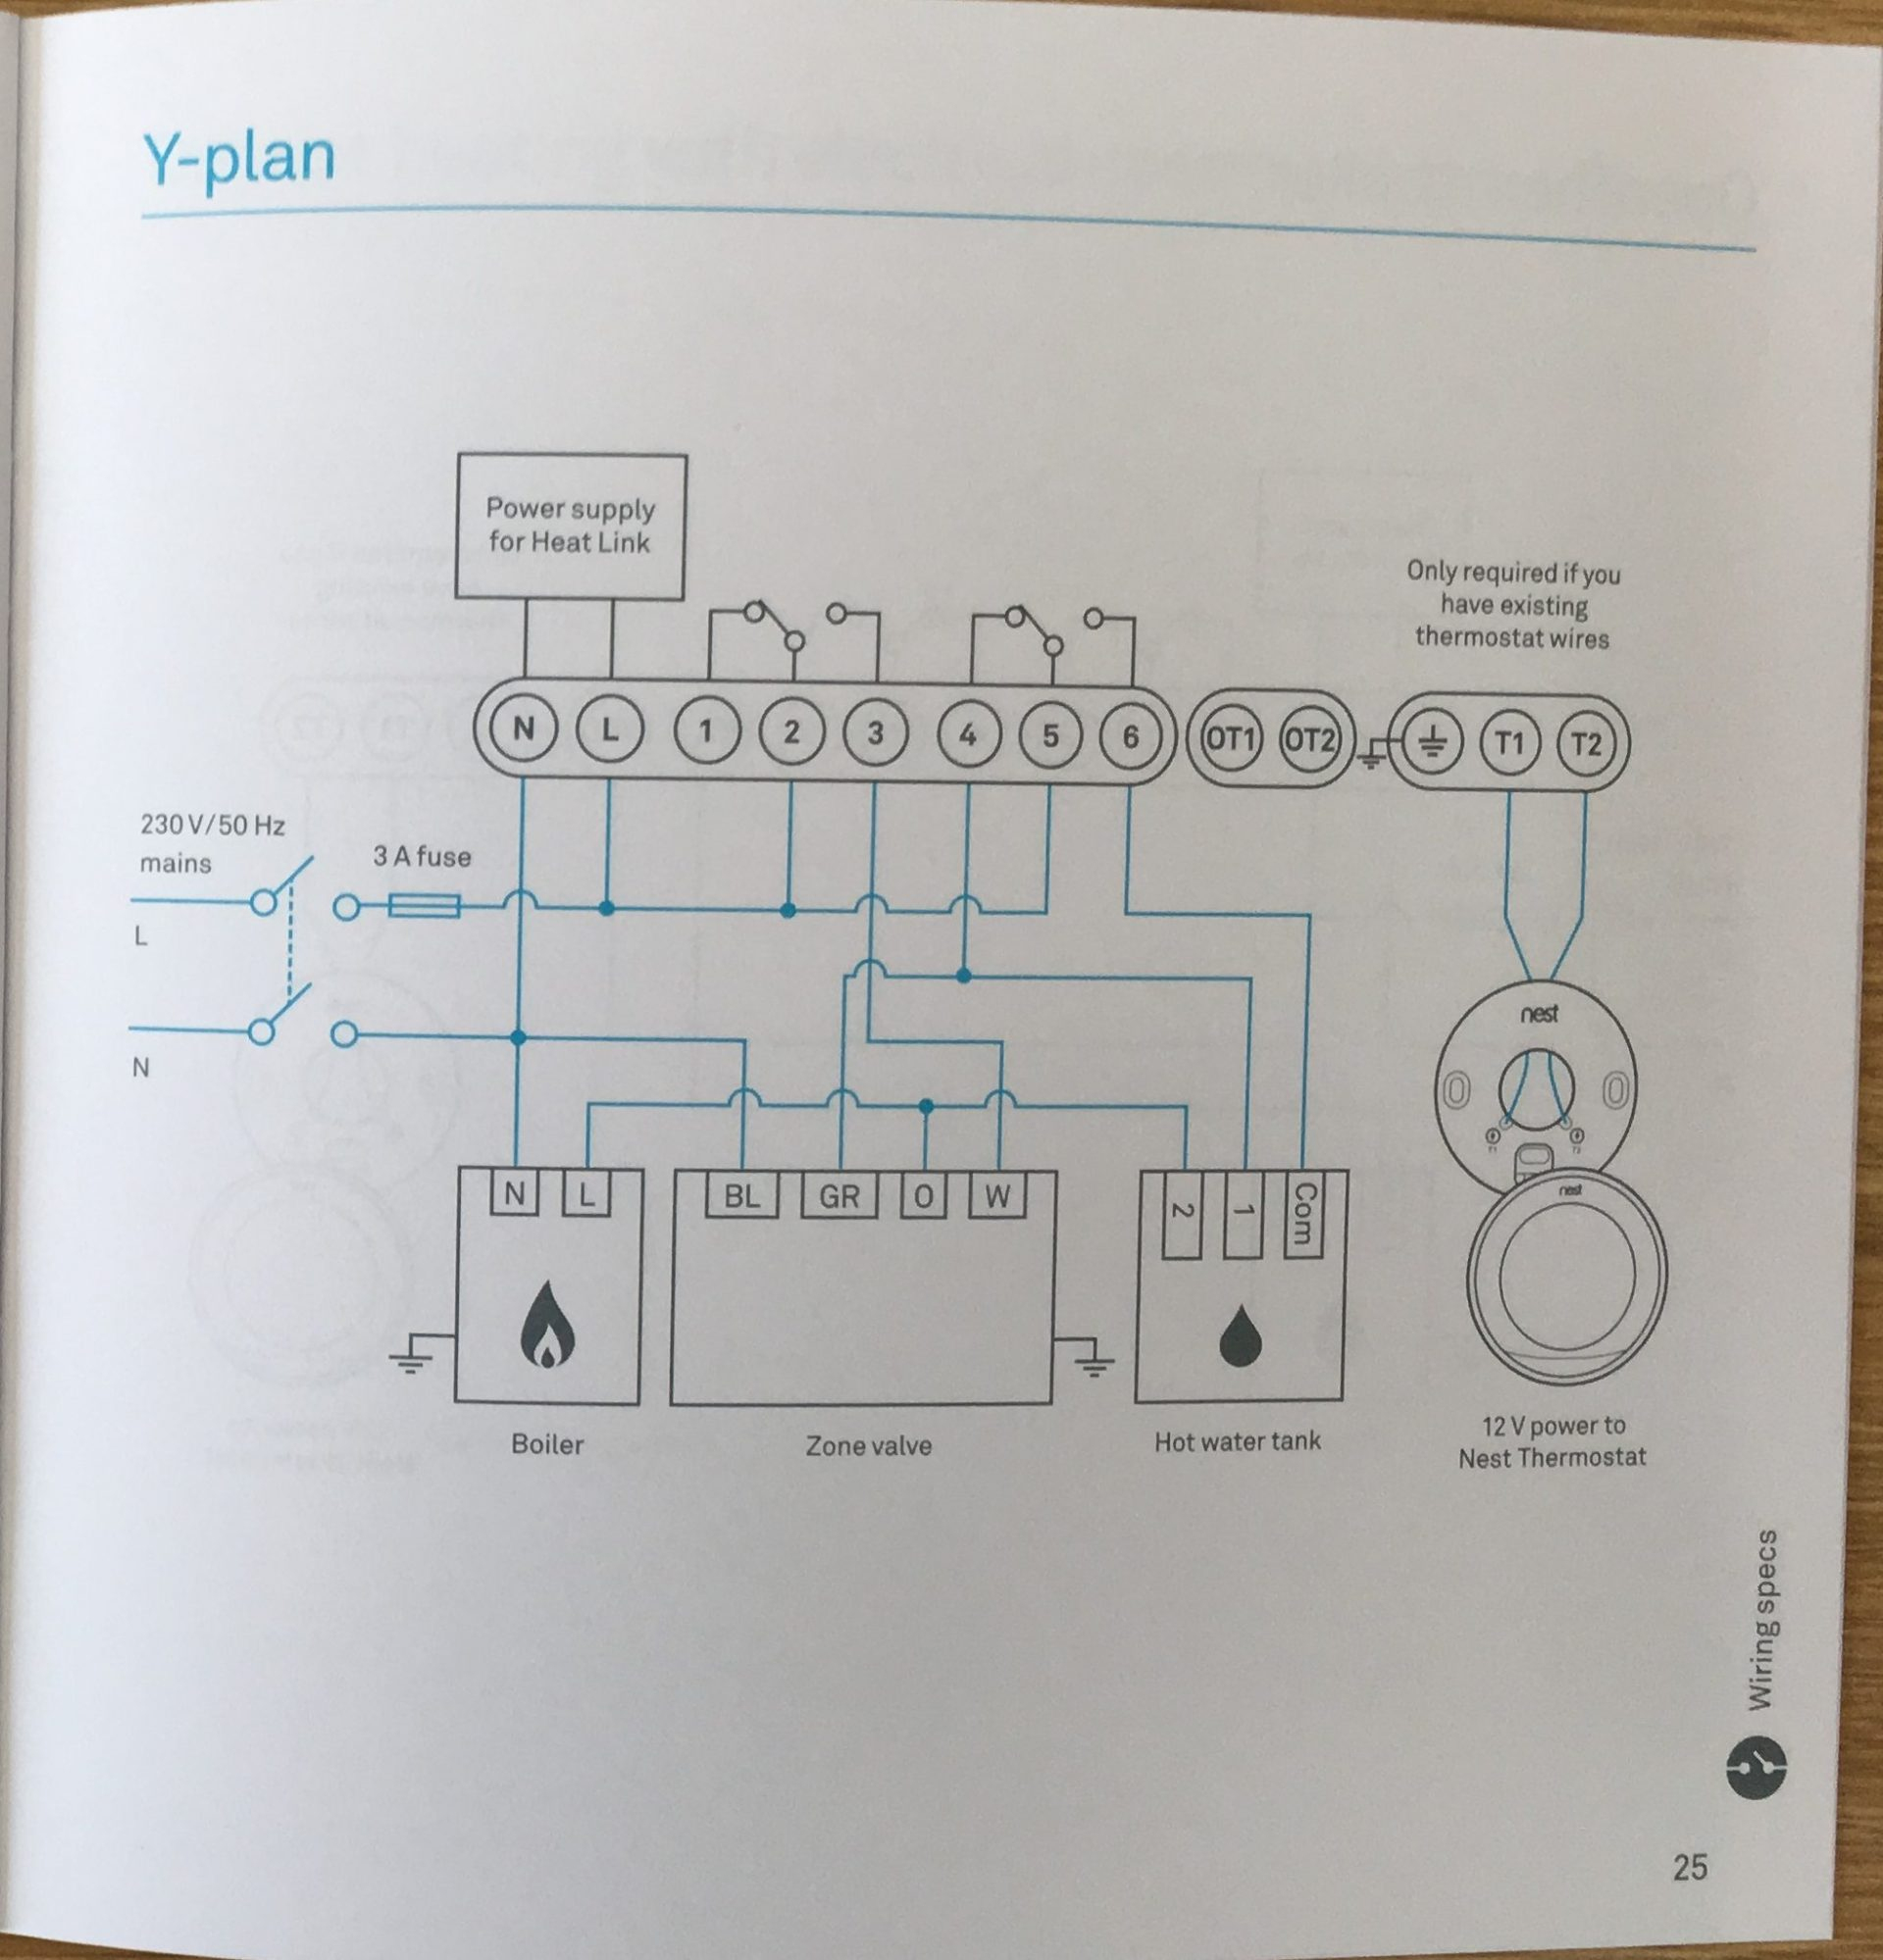 How To Install The Nest Learning Thermostat (3Rd Gen) In A Y-Plan - Nest Gen 3 Wiring Diagram